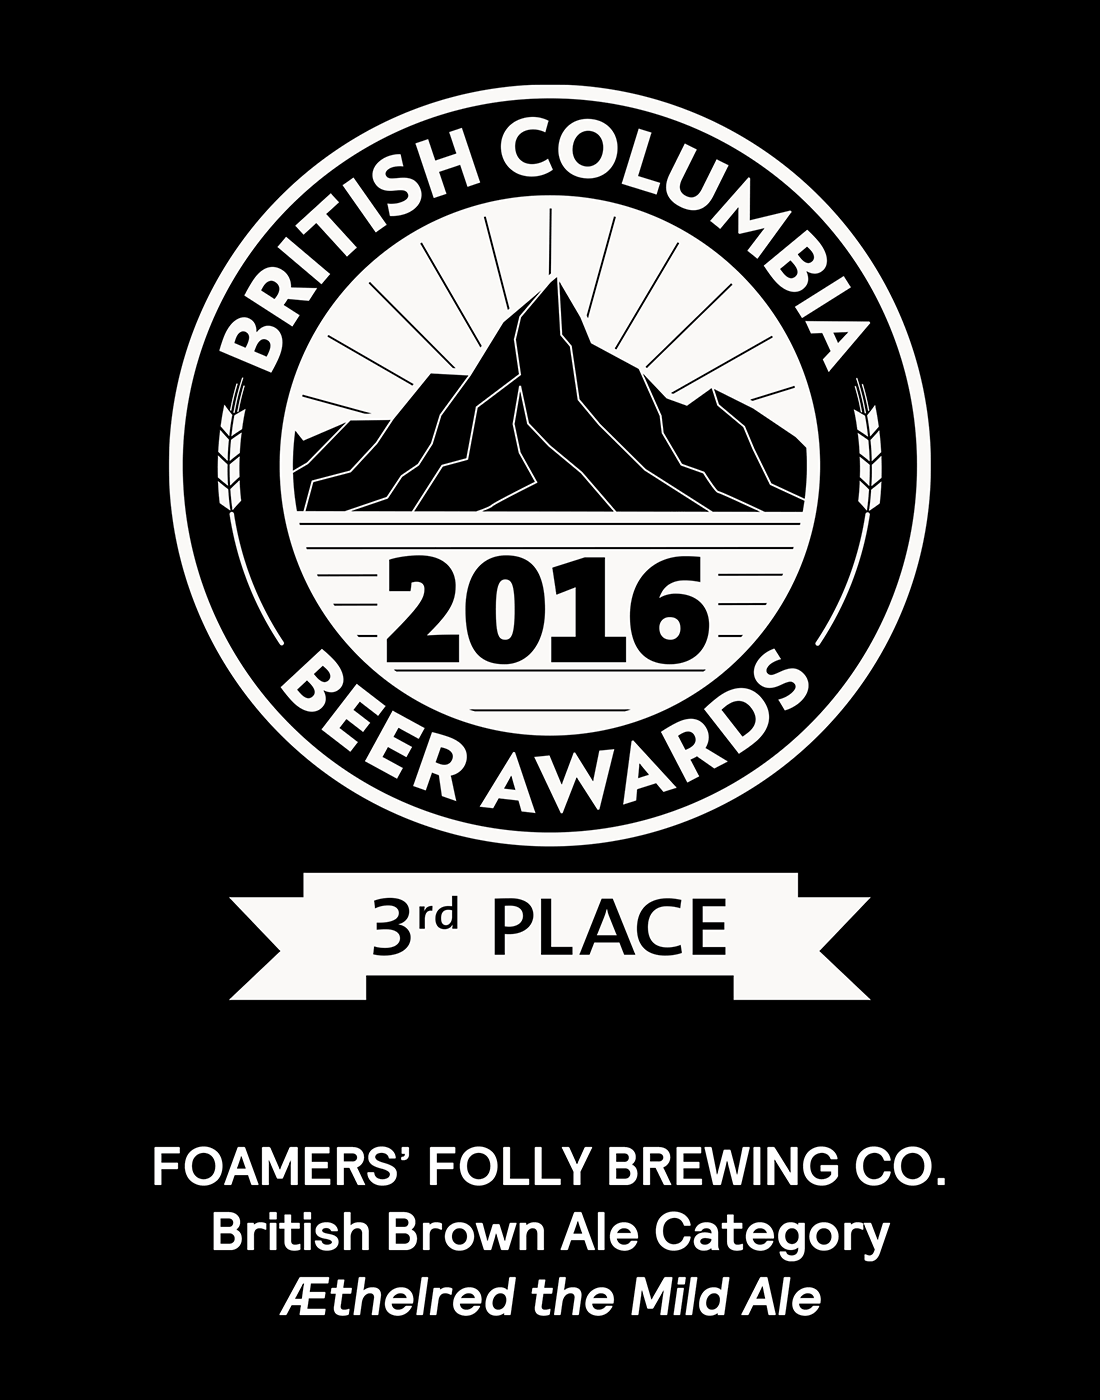 BC Beer Awards 2016, 3rd Place in the British Brown Ale Category for our Aethelred the Mild Ale